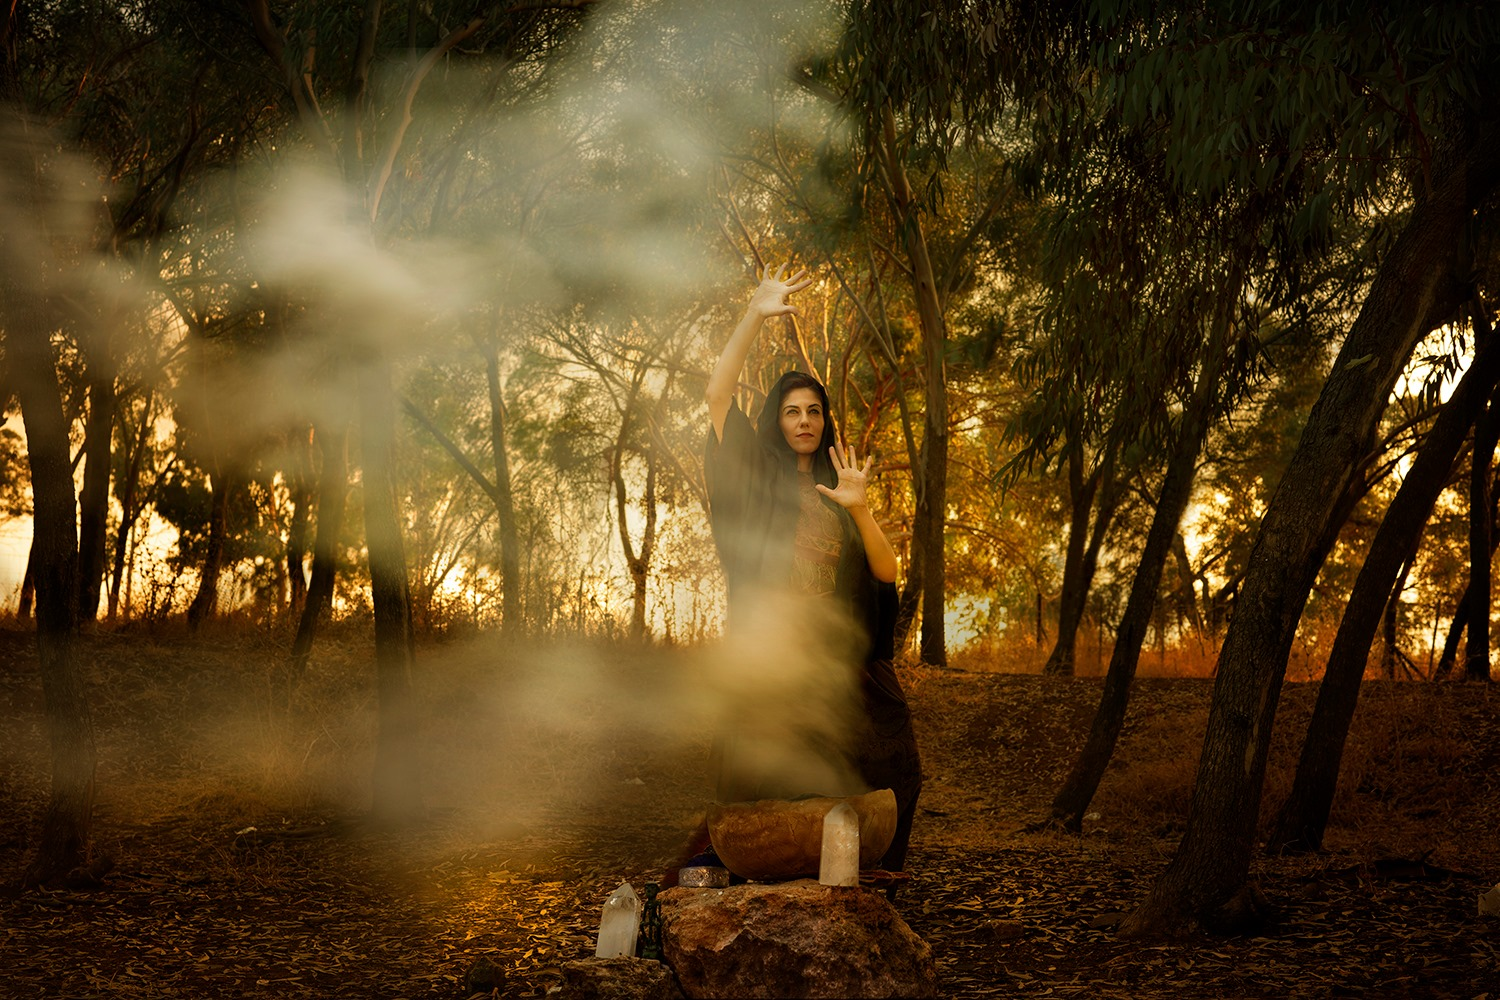 Witch of Endor ״And when the woman saw Samuel, she cried with a loud voice; and the woman spoke to Saul, saying: 'Why hast thou deceived me? for thou art Saul.' ״ Samuel 1 28, 12